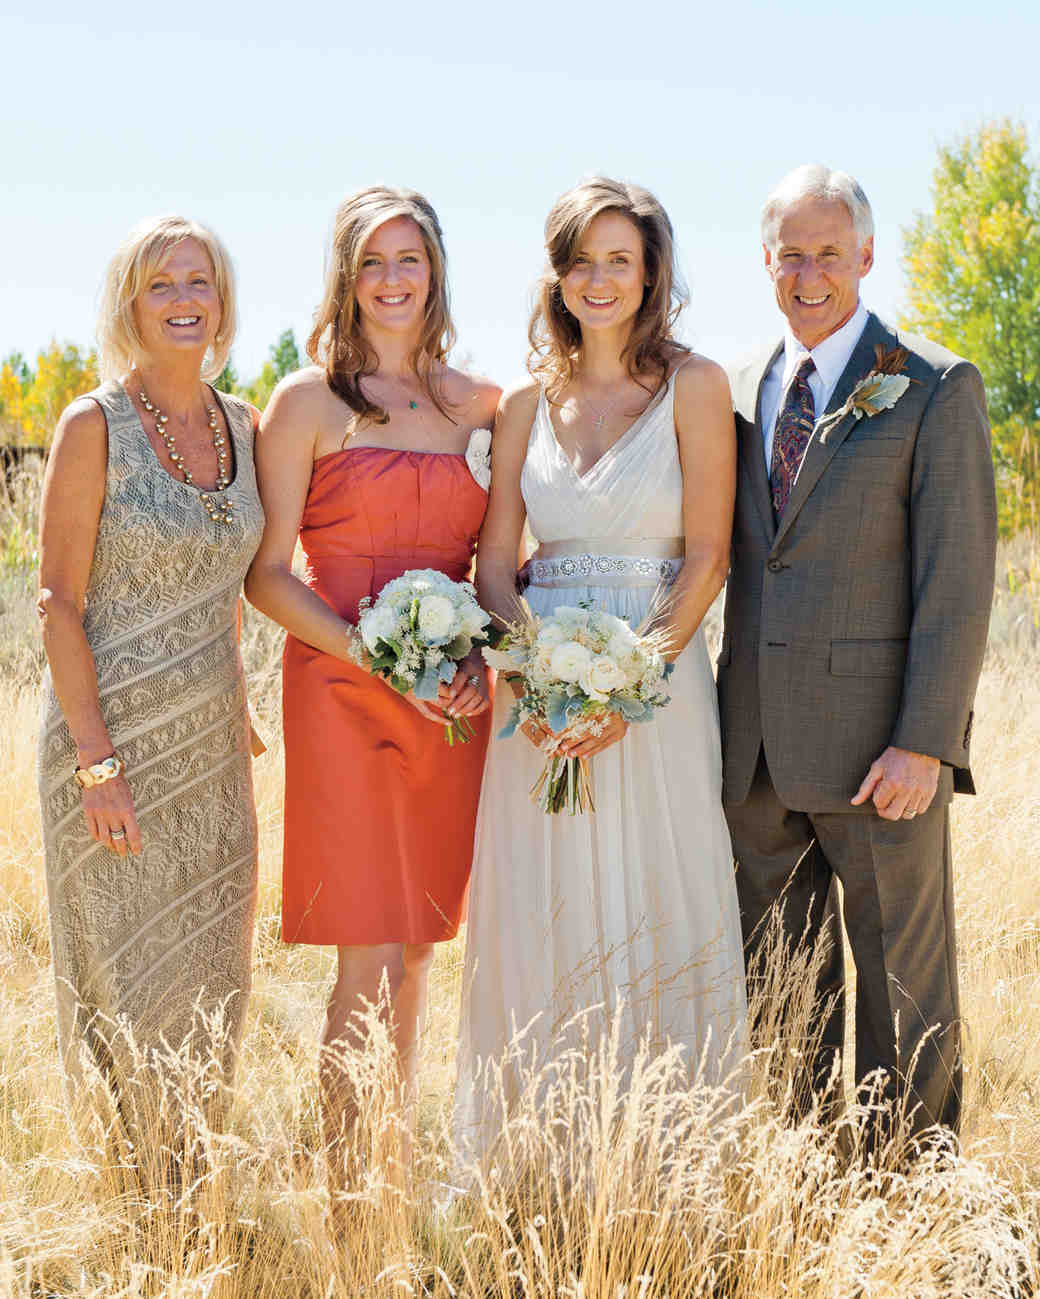 Cheap Wedding Dresses Buffalo Ny: A Vintage, Rustic Autumn Wedding Outdoors In Wyoming